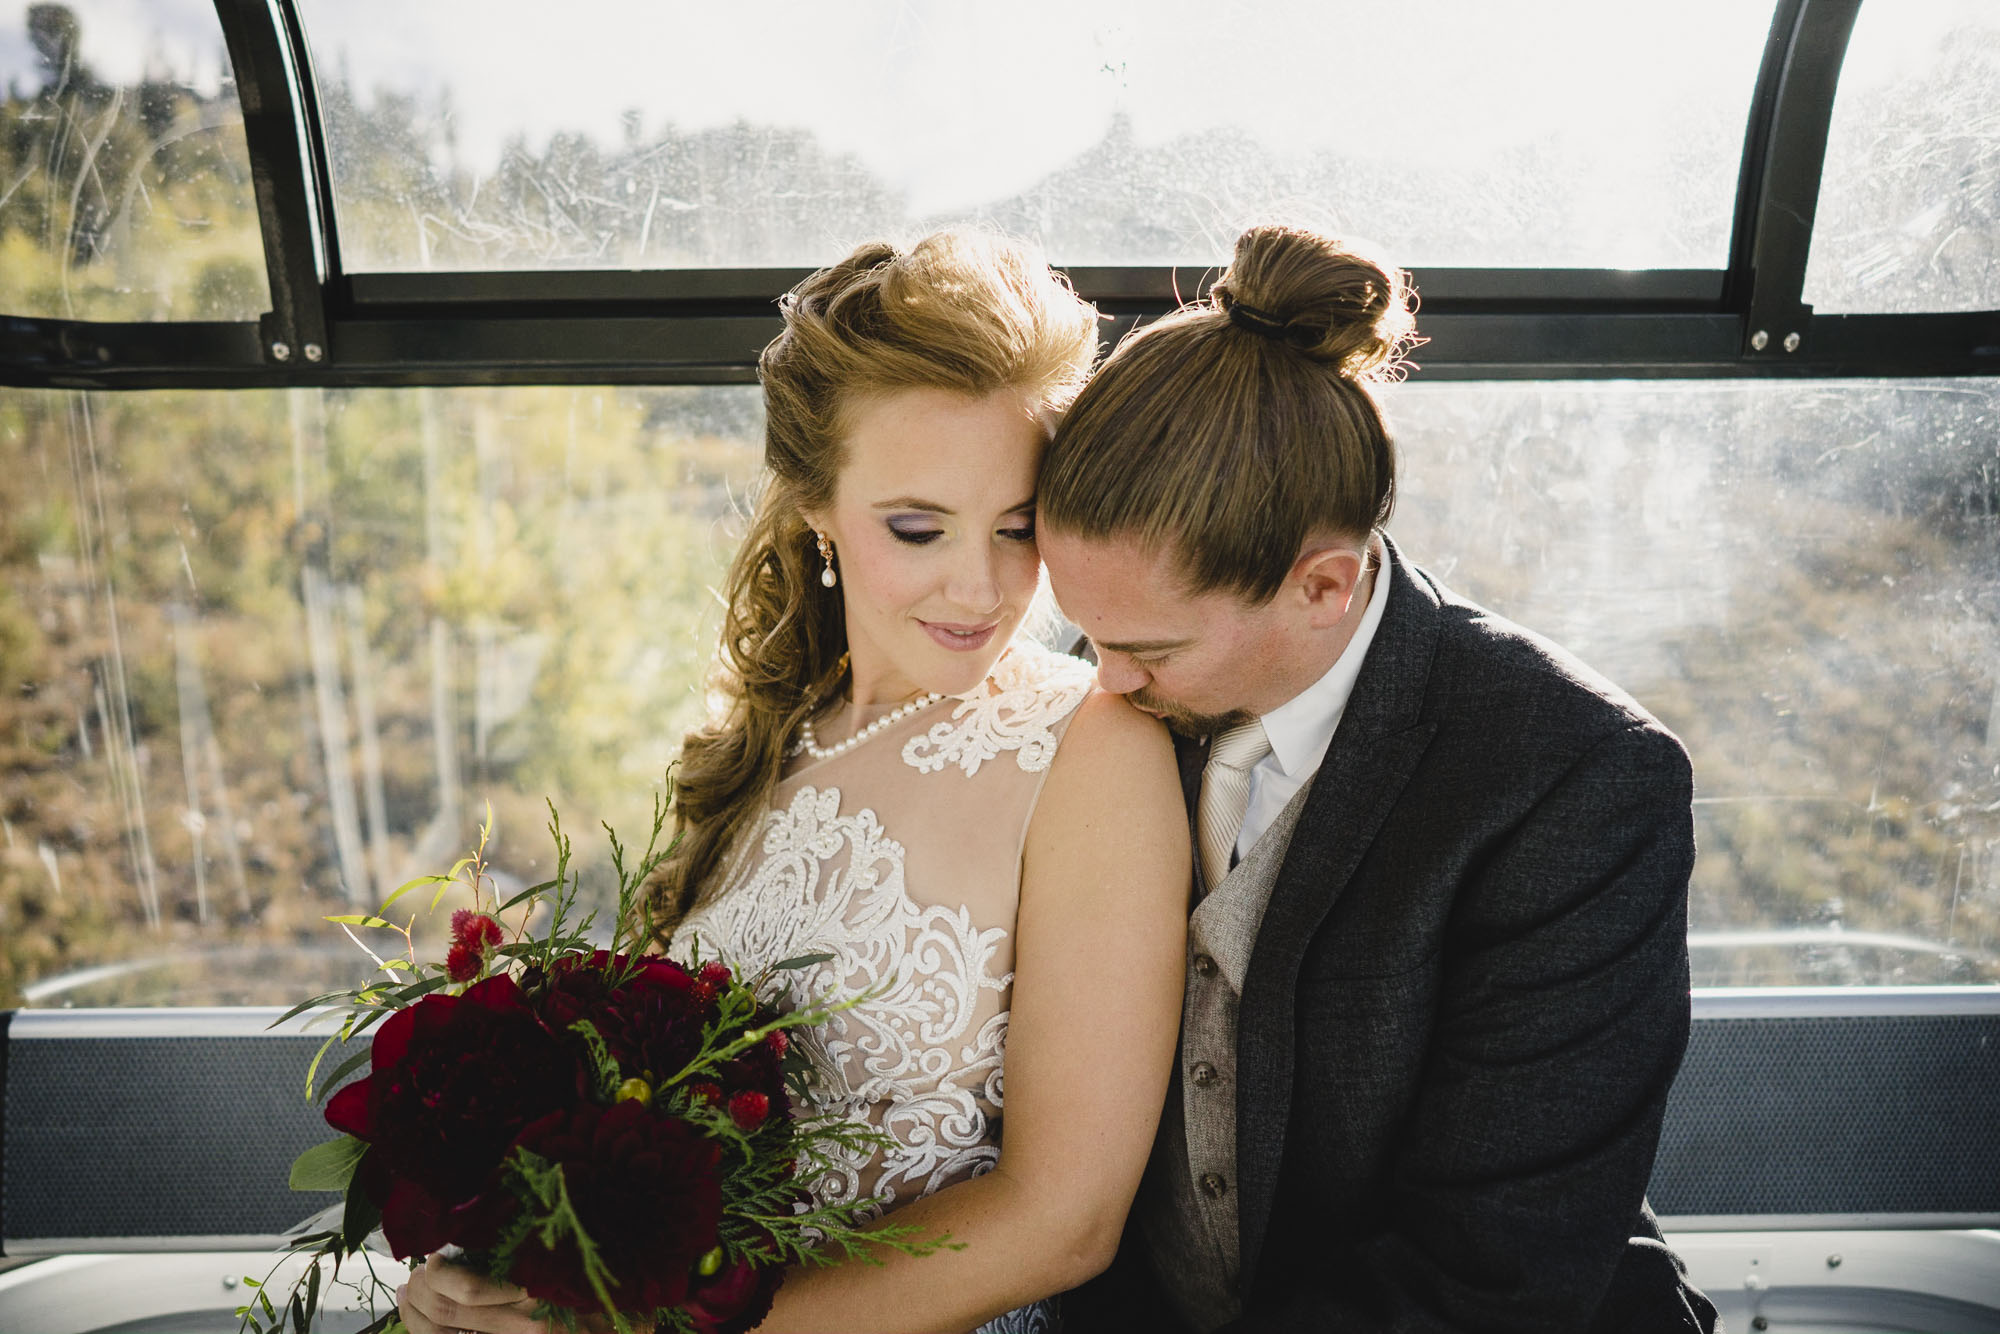 Snowbasin wedding intimate portrait on gondola photo